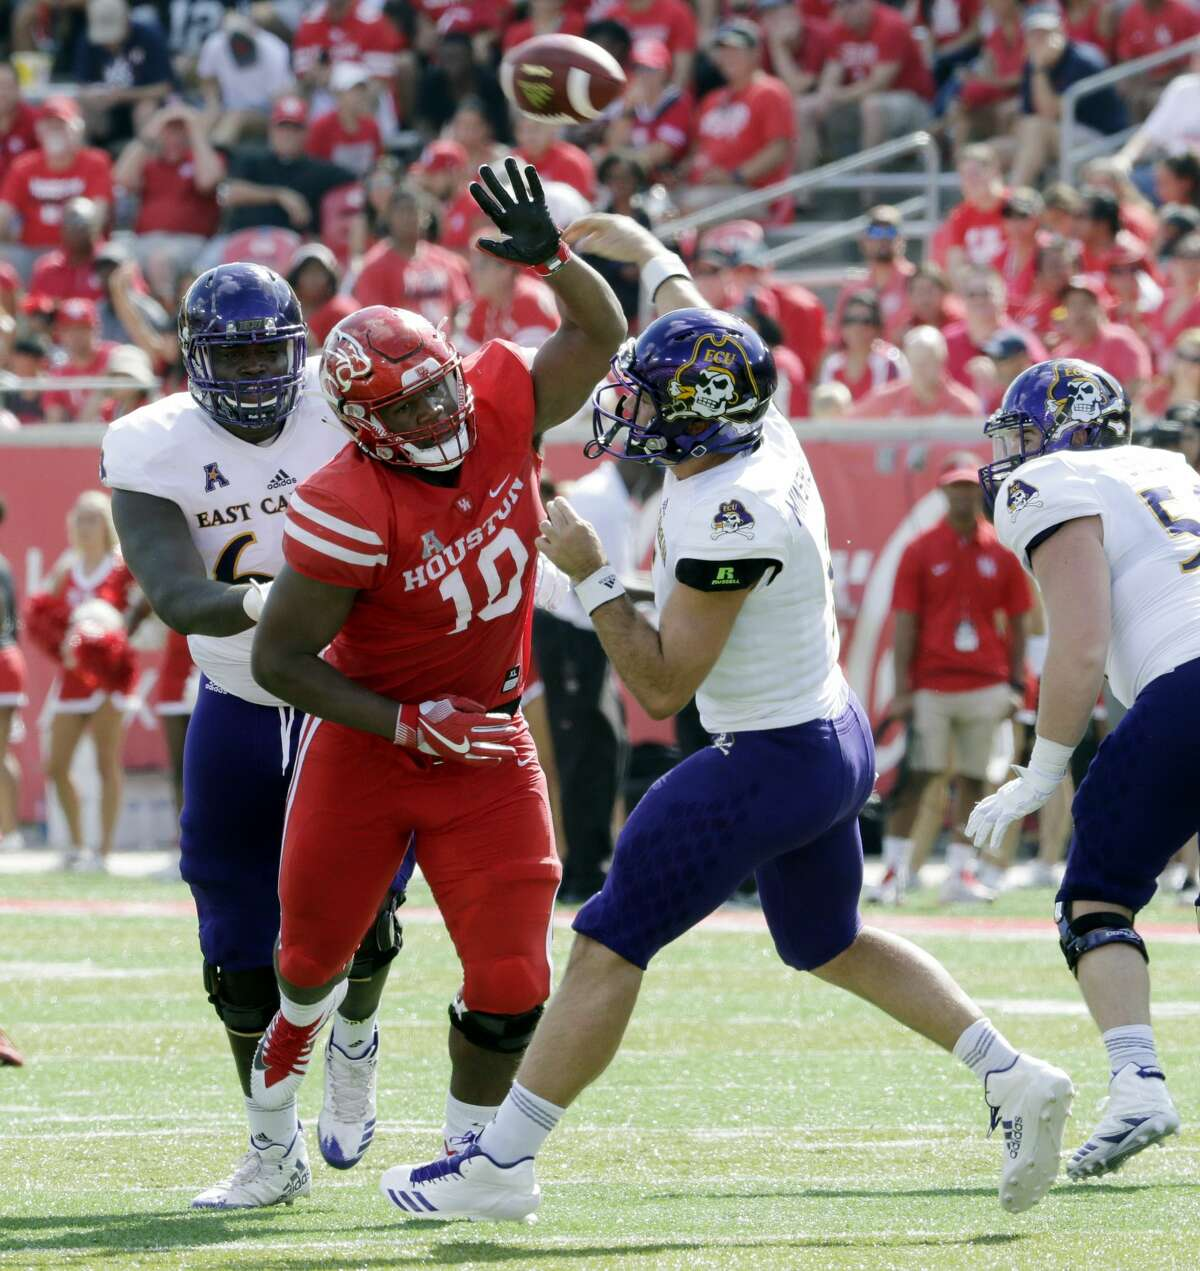 Houston defensive tackle Ed Oliver (10) tries to break up the pass by East Carolina quarterback Gardner Minshew (5) during the first half of an NCAA college football game Saturday, Nov. 4, 2017, in Houston. (Michael Wyke/Houston Chronicle via AP)